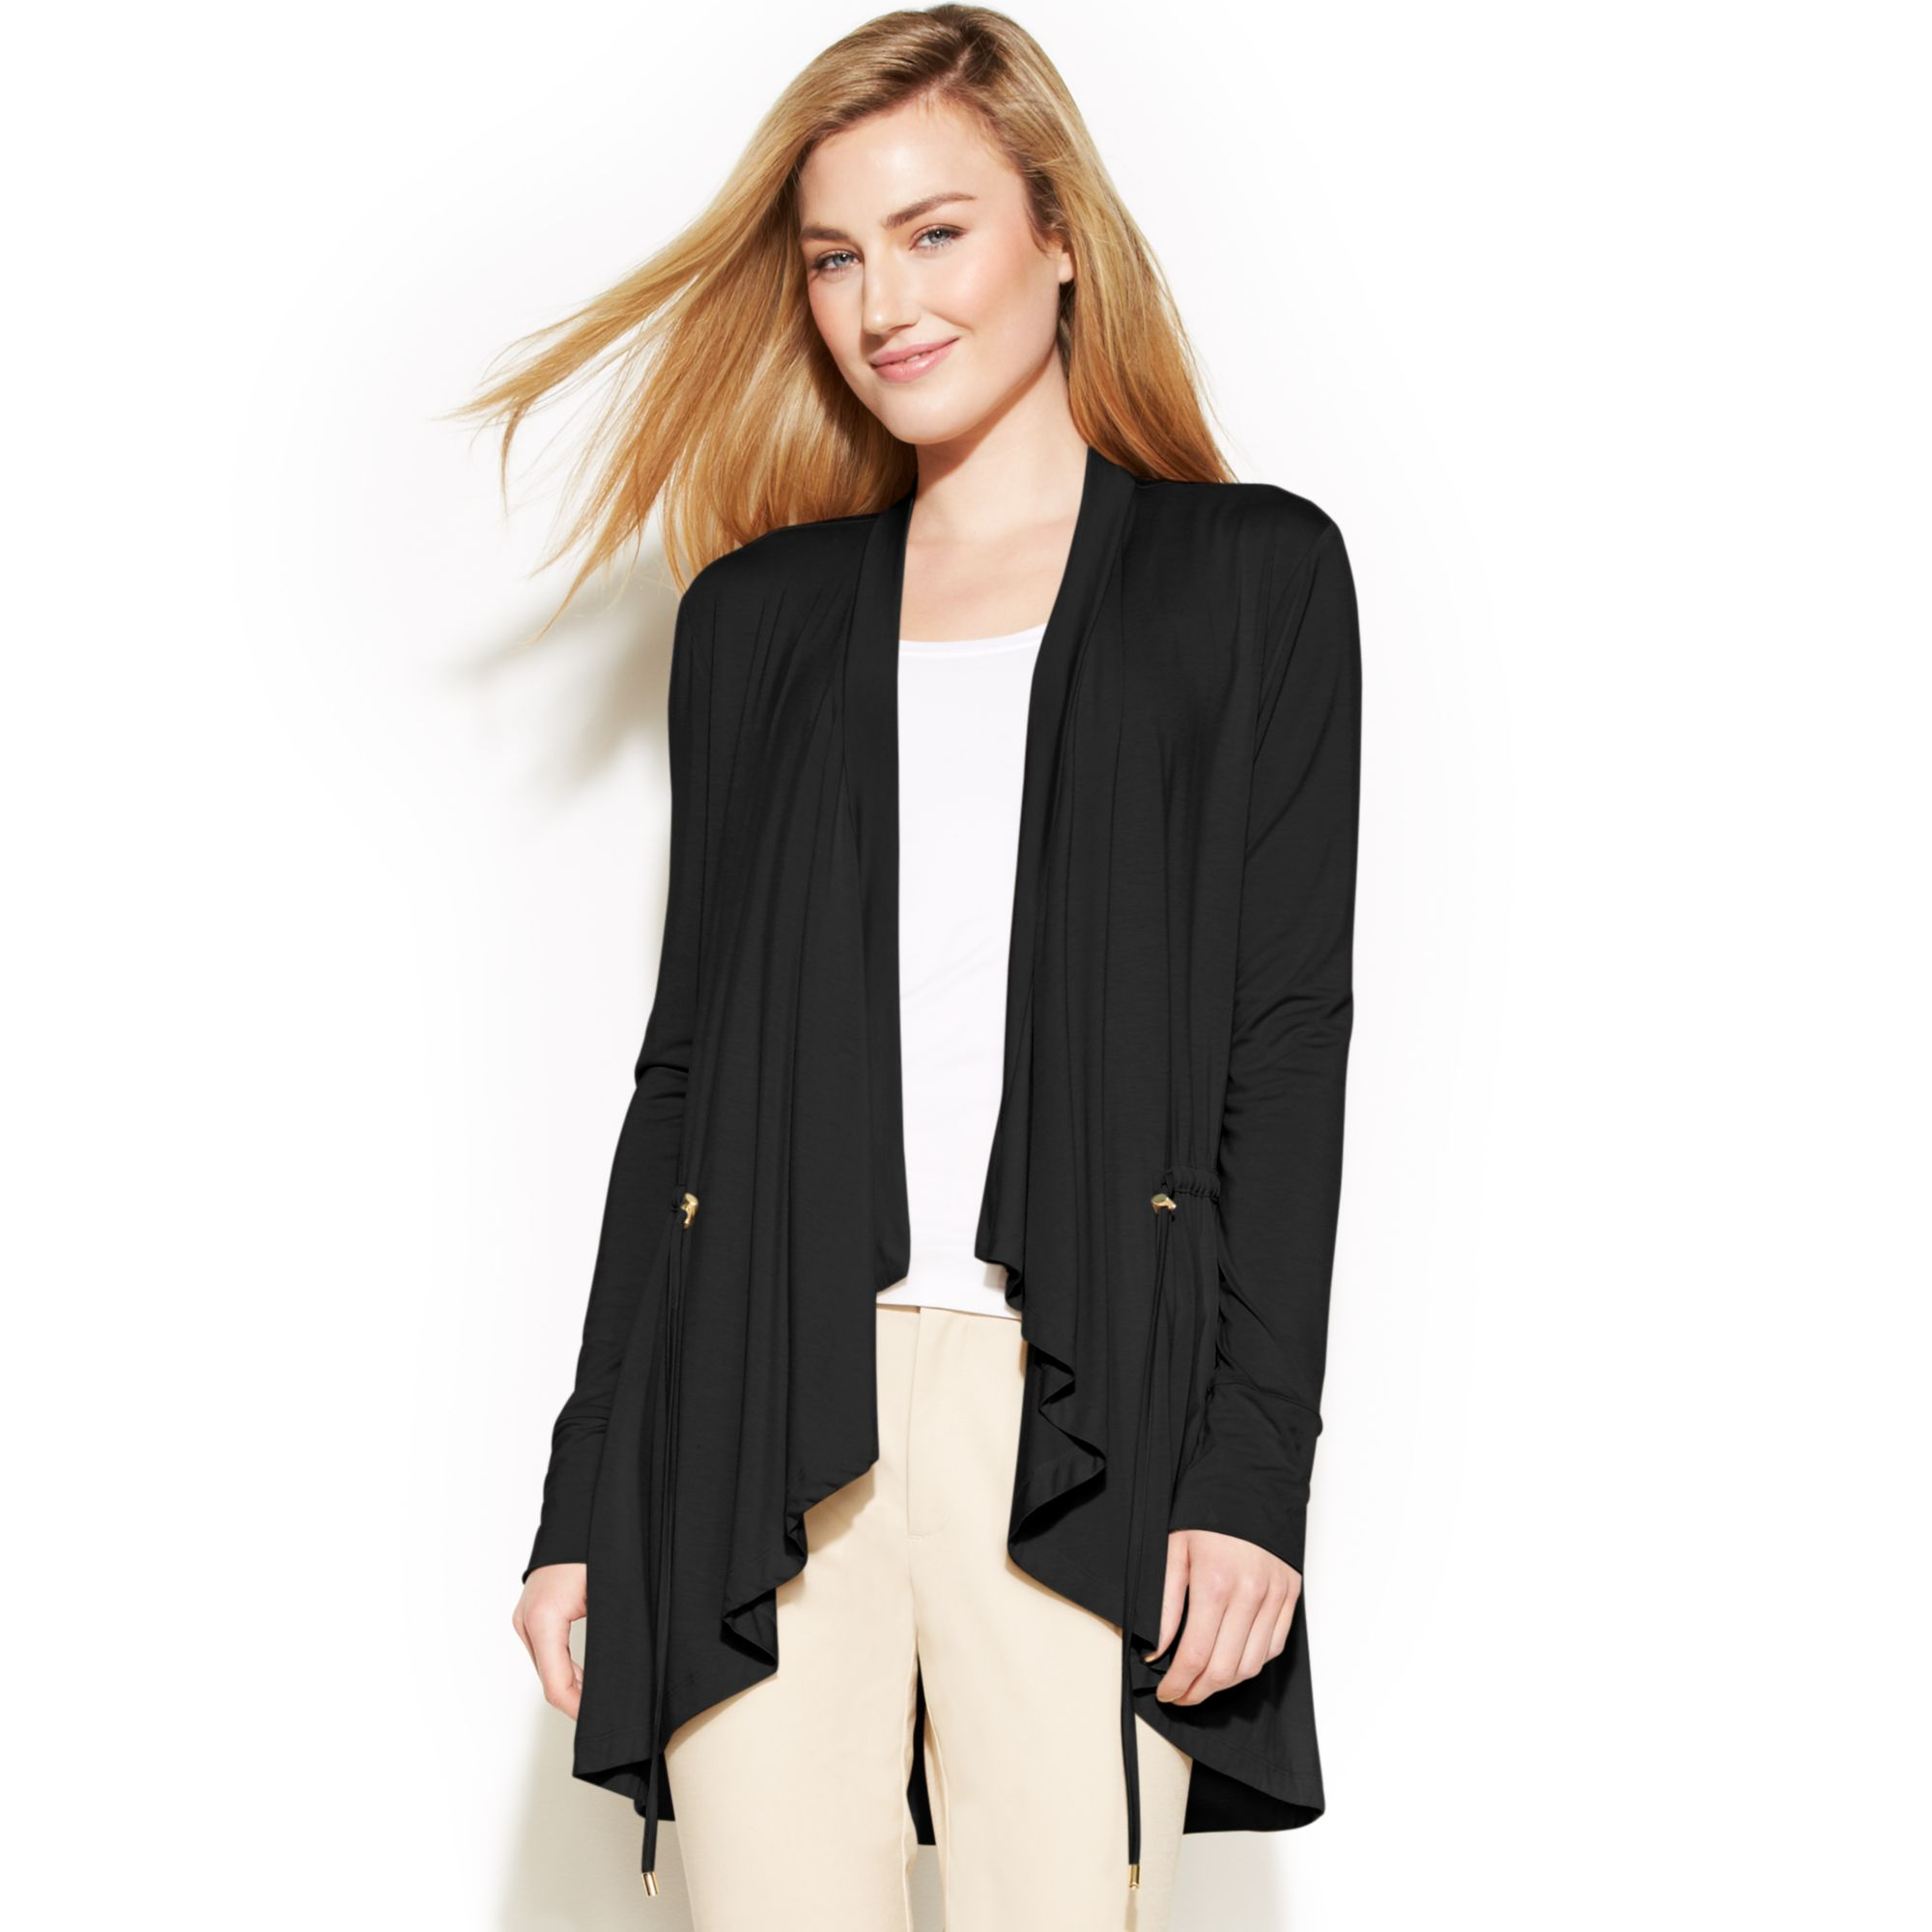 womens open linen draped products side front drapes spdye chaserbrand cardigan com sweater